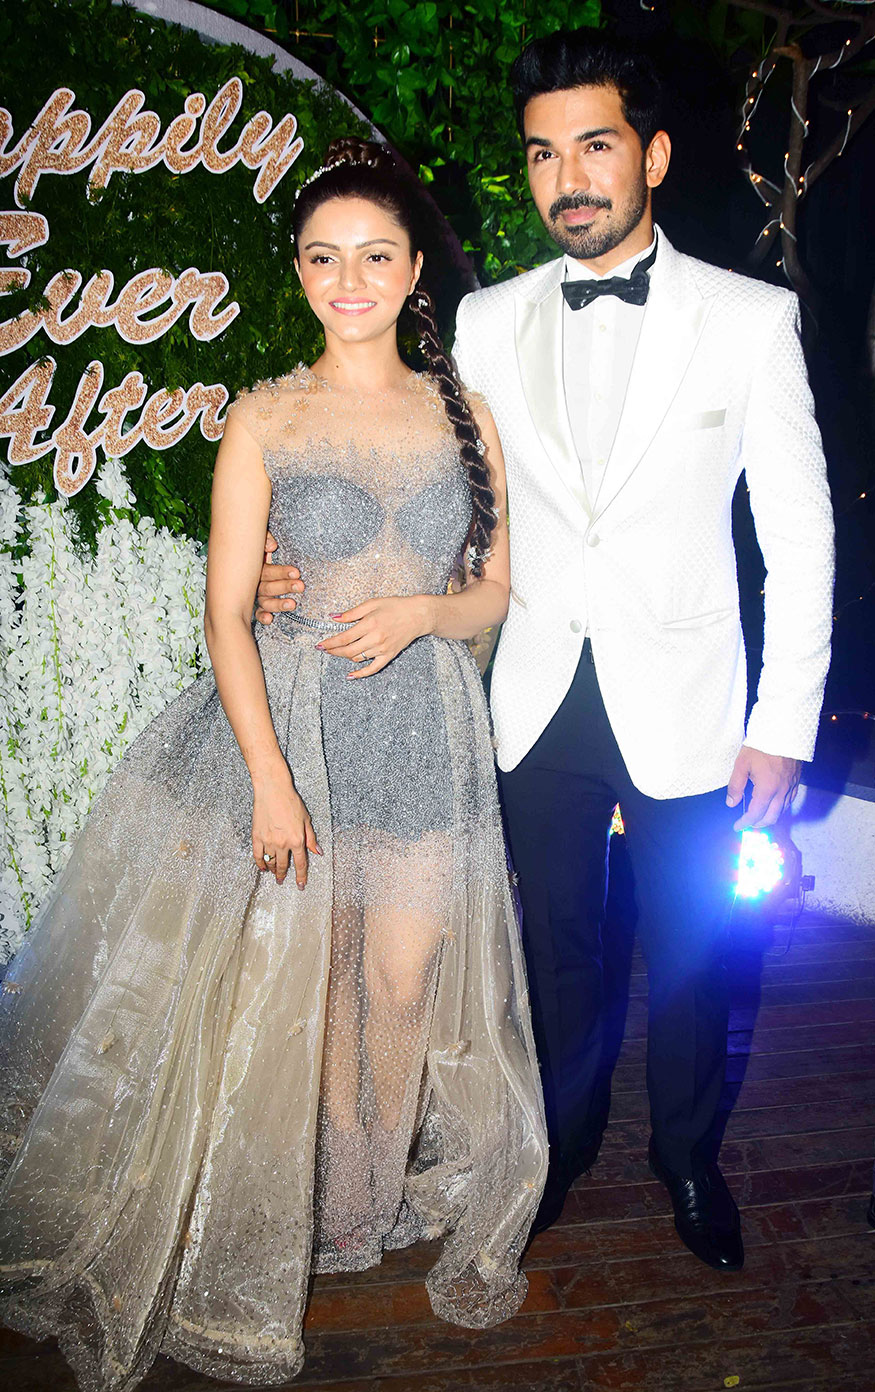 Pics Rubina Dilaik And Abhinav Shukla S Wedding Reception Photogallery